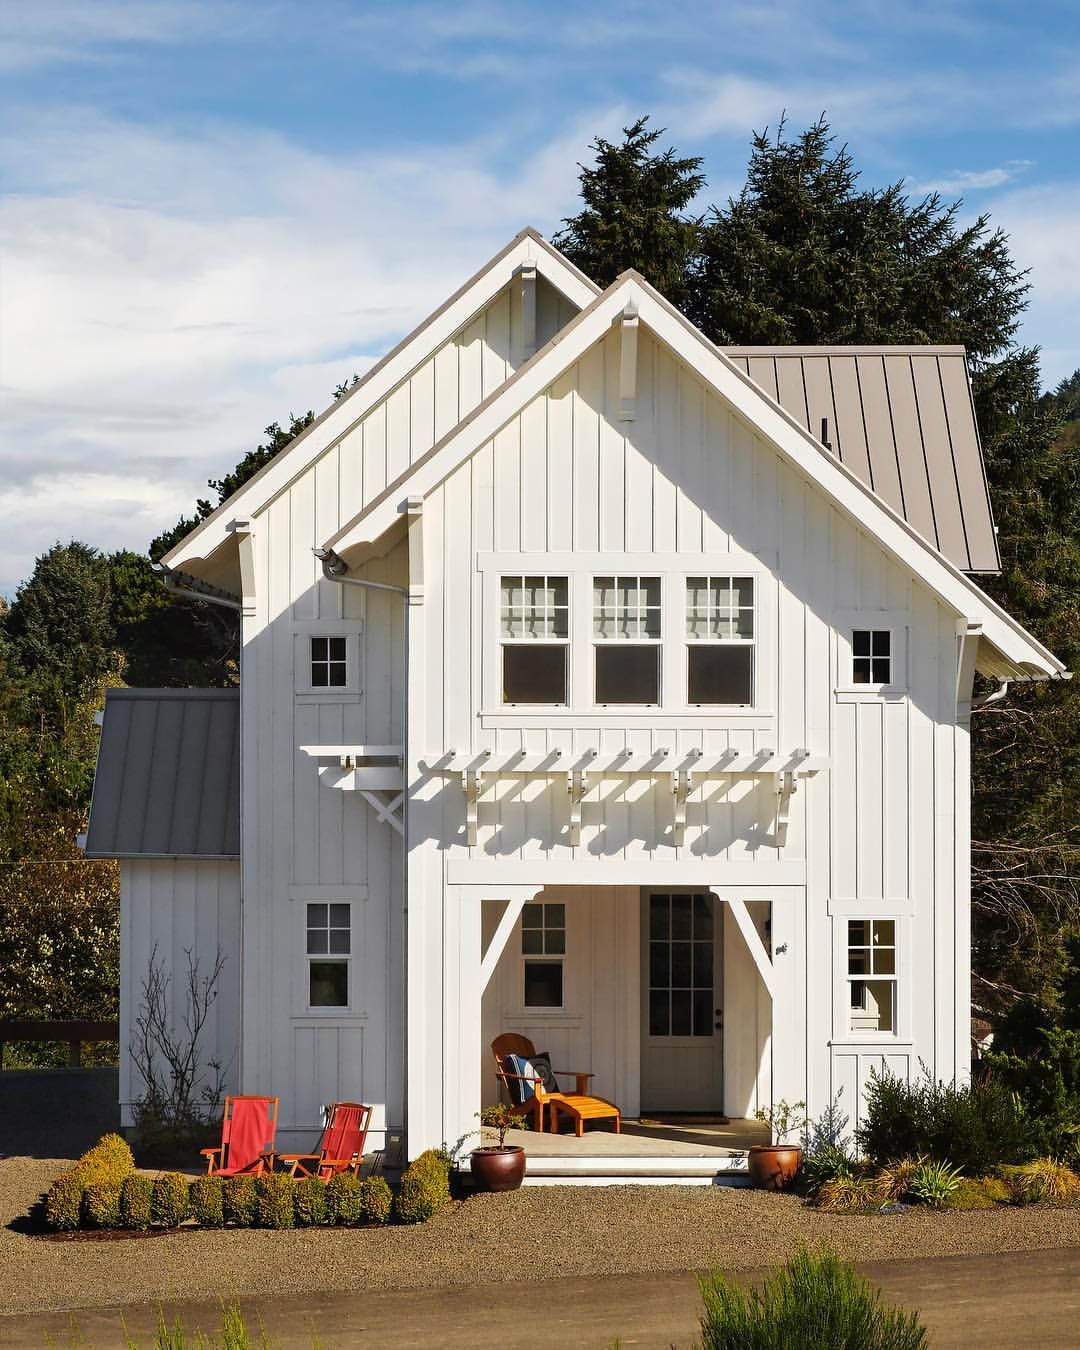 4 219 Likes 54 Comments Sunset Magazine Sunsetmag On Instagram This Classic Home On The Oregon Classic House Modern Farmhouse Exterior Sunset Magazine